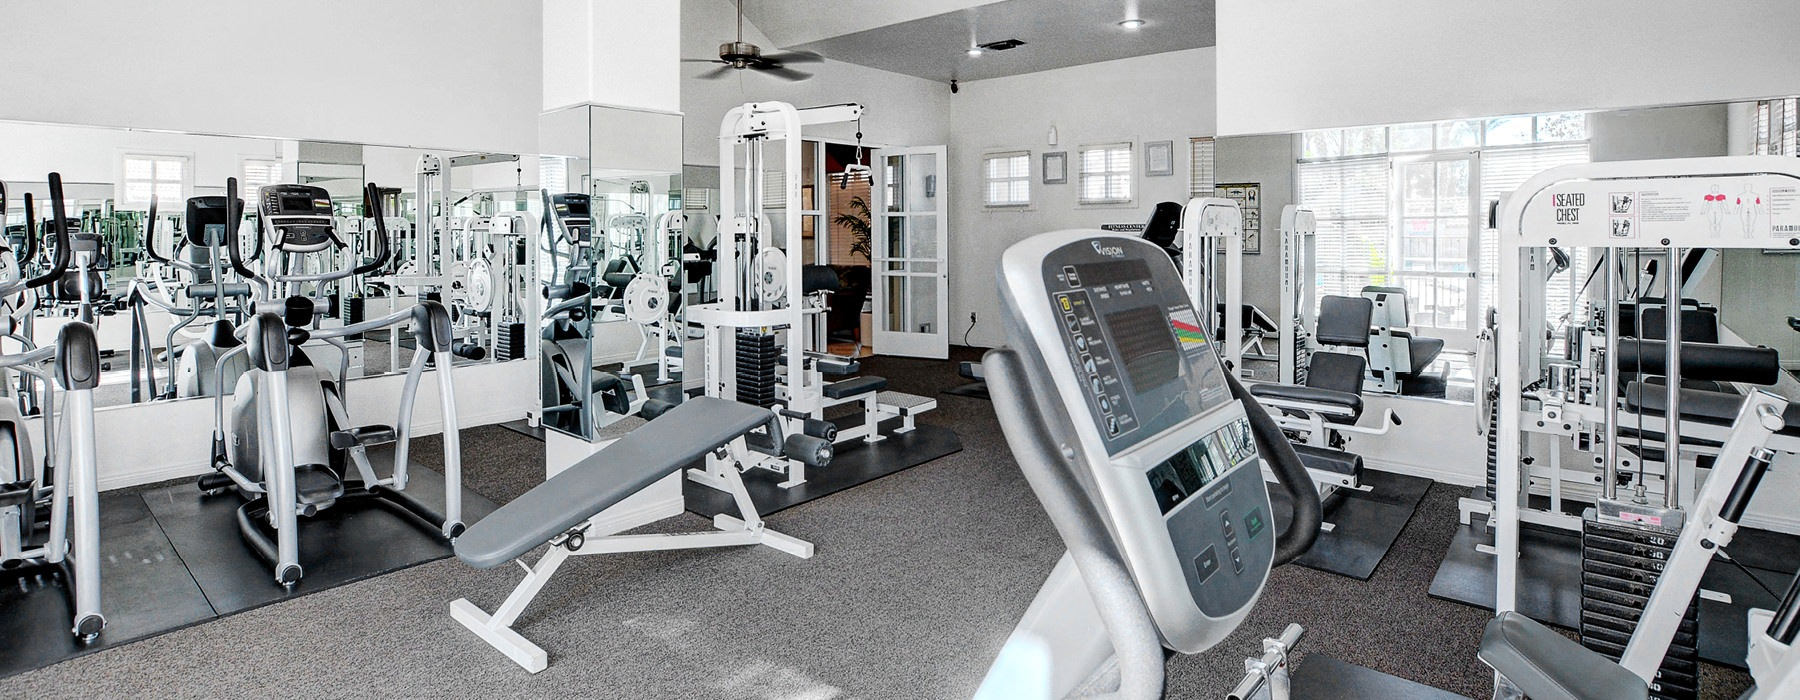 brightly lit gym with ceiling fans and central ac